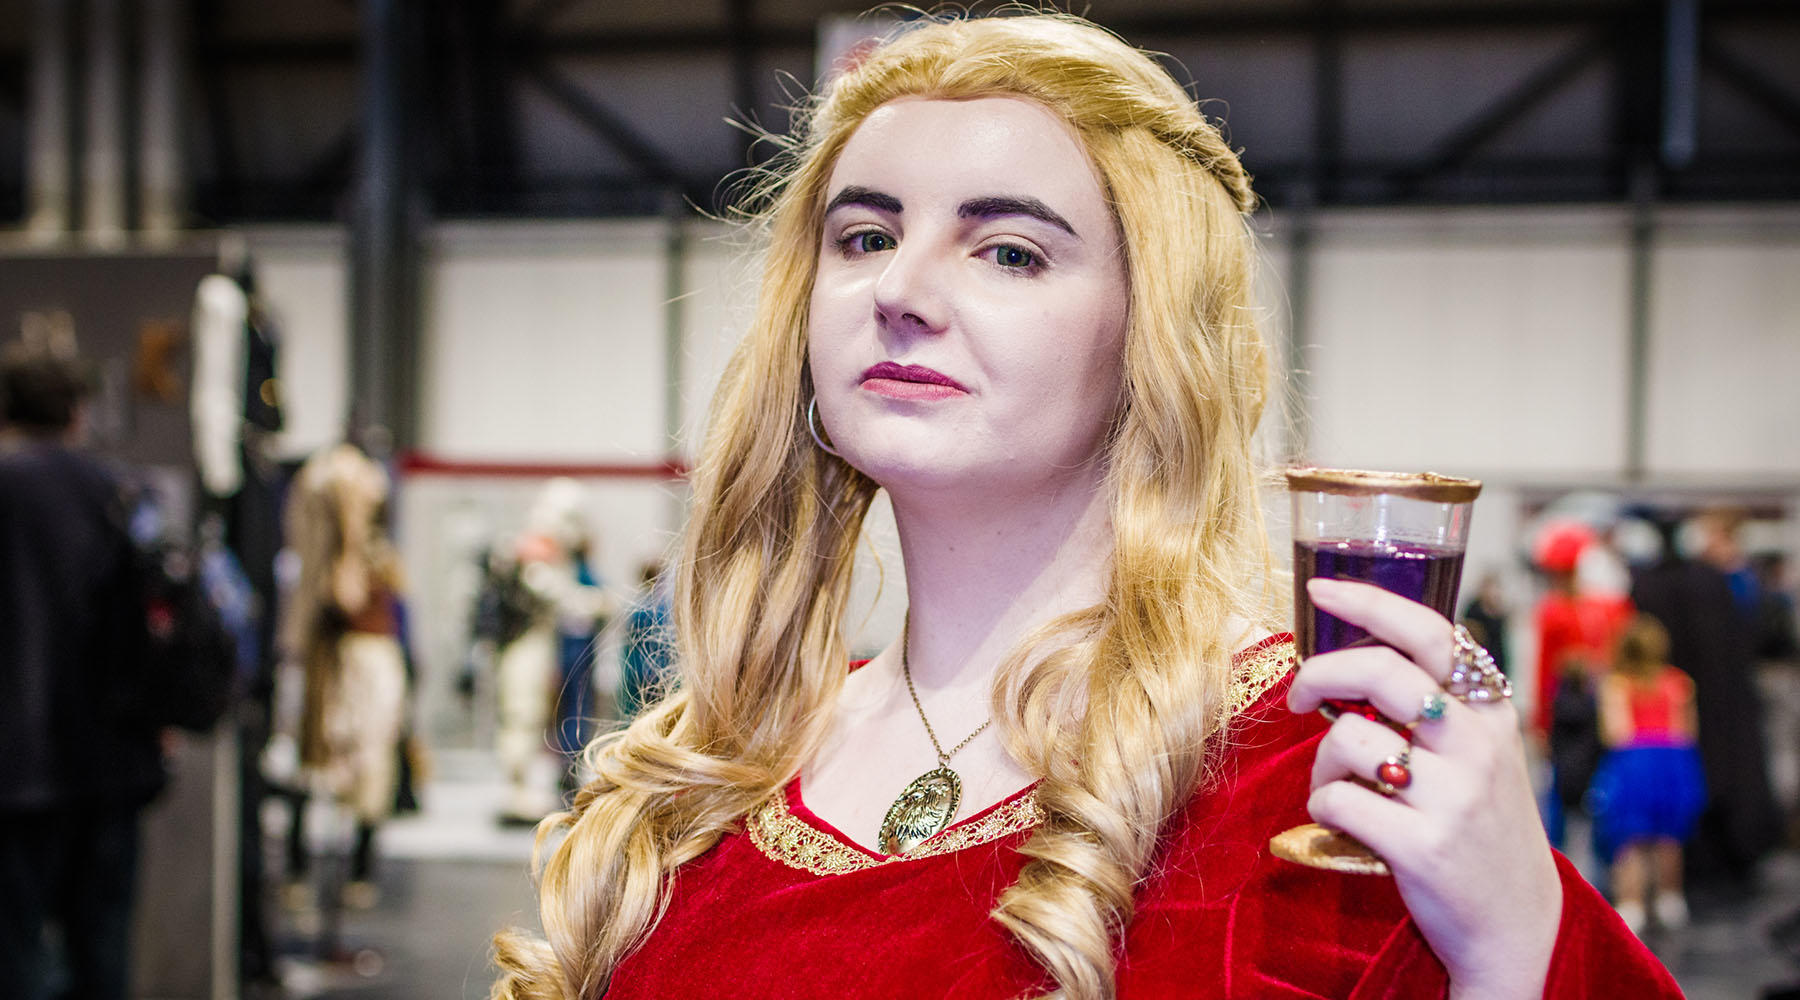 This powerful and ambitious Lannister cosplay